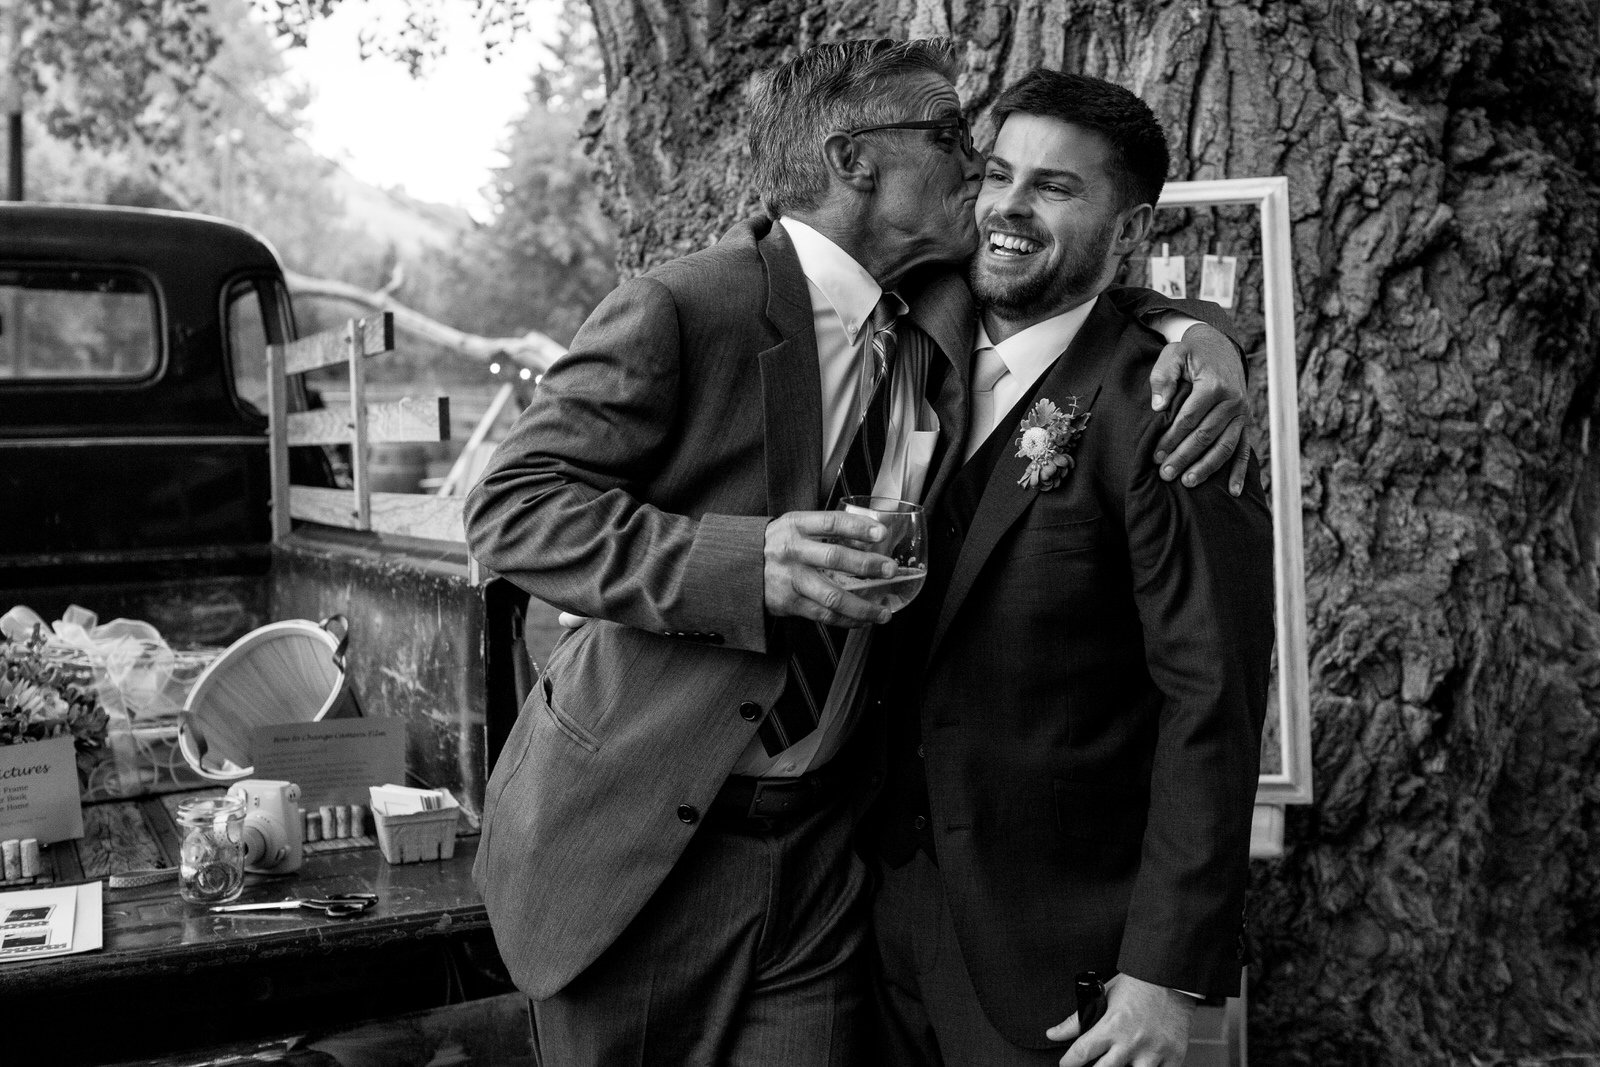 black and white of father of the bride passionately kissing the groom on the check as the groom laughs